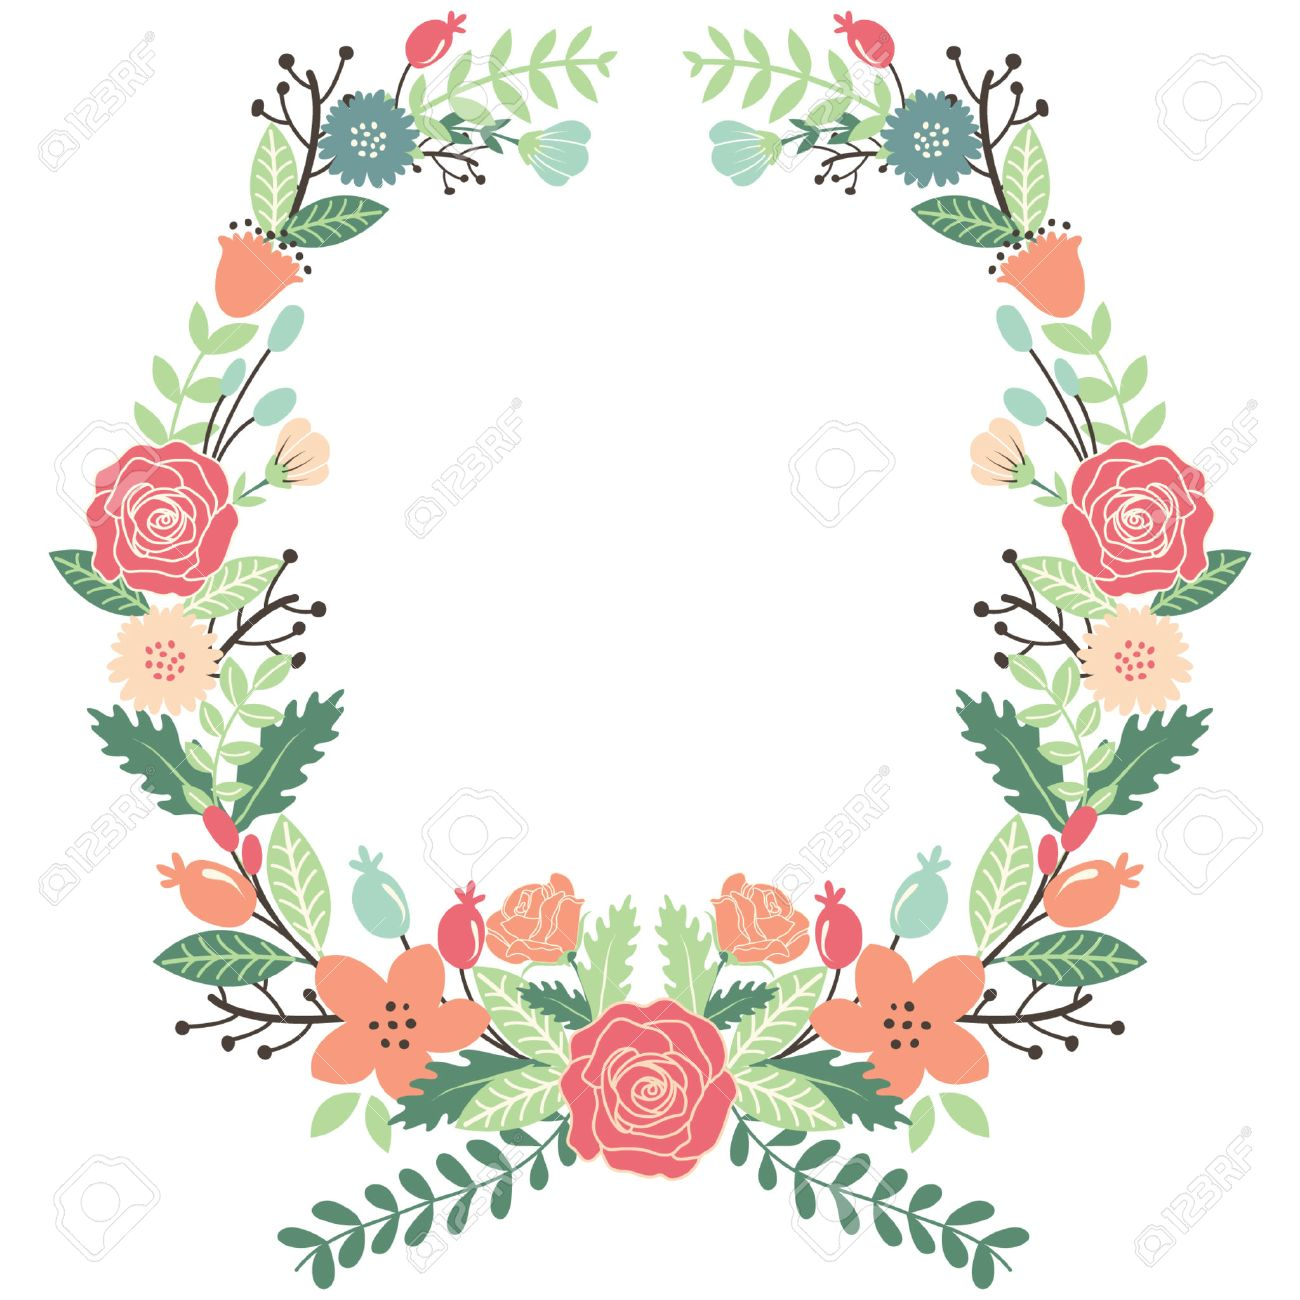 Vintage Flowers Wreath.